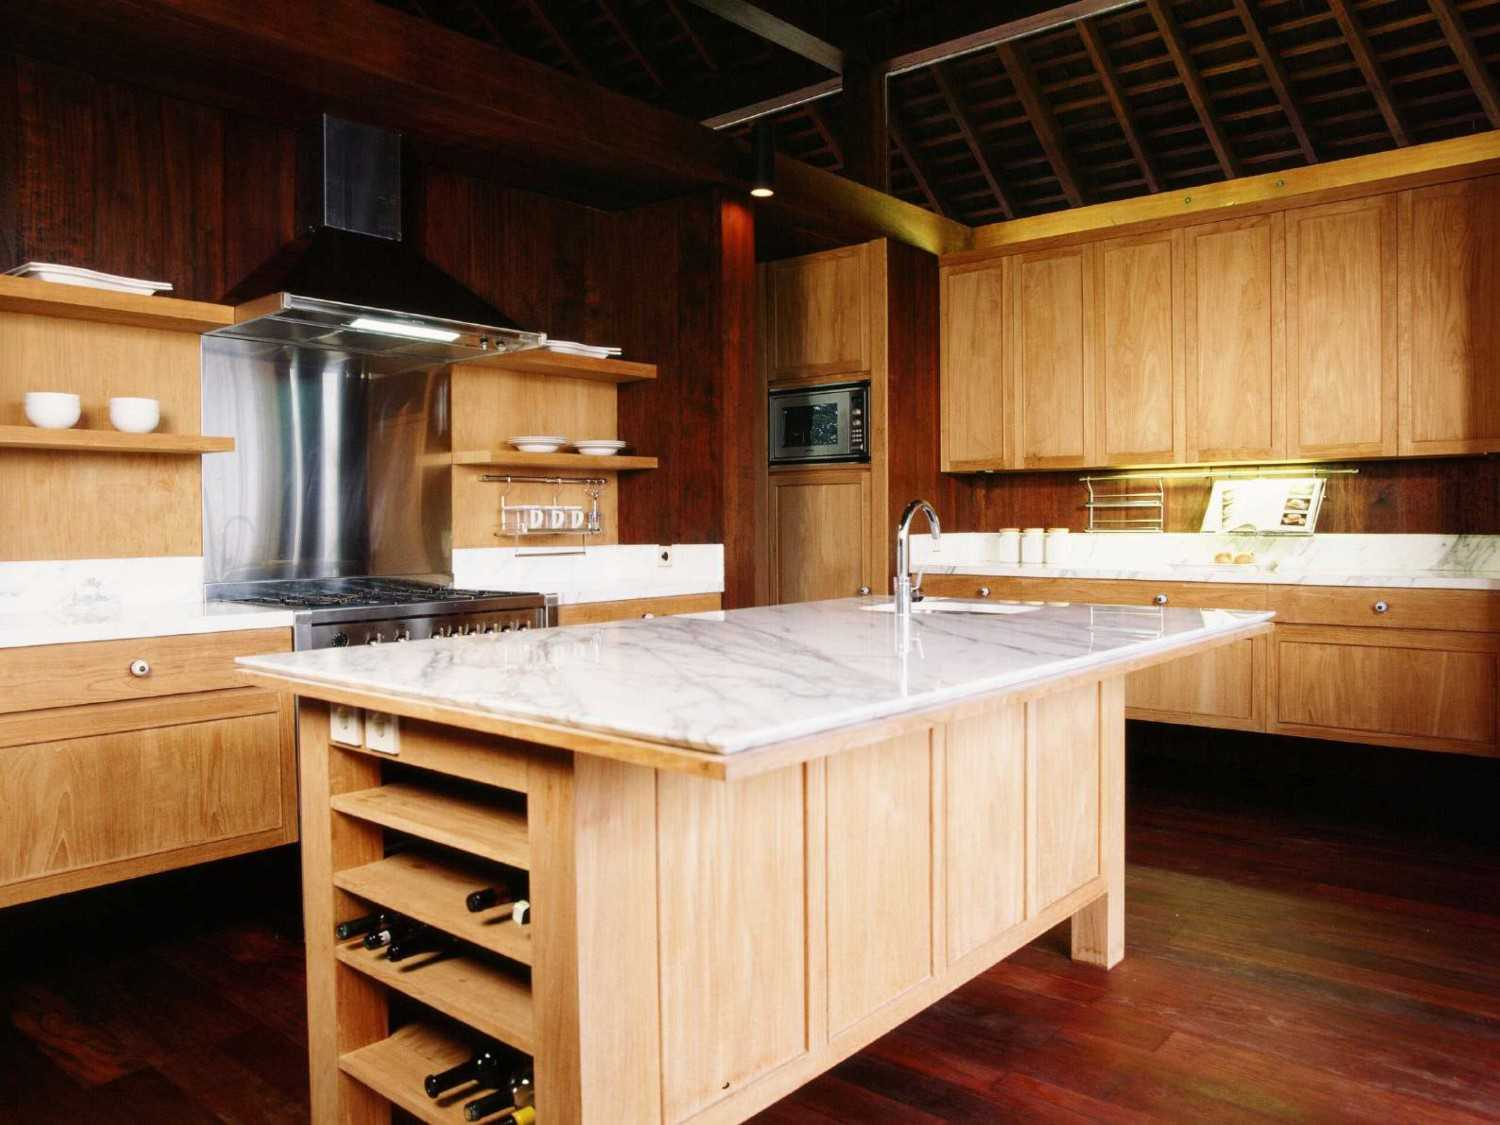 Studio Air Putih Ak_House Rancamaya, Bogor Rancamaya, Bogor Kitchen Room Tradisional 25015